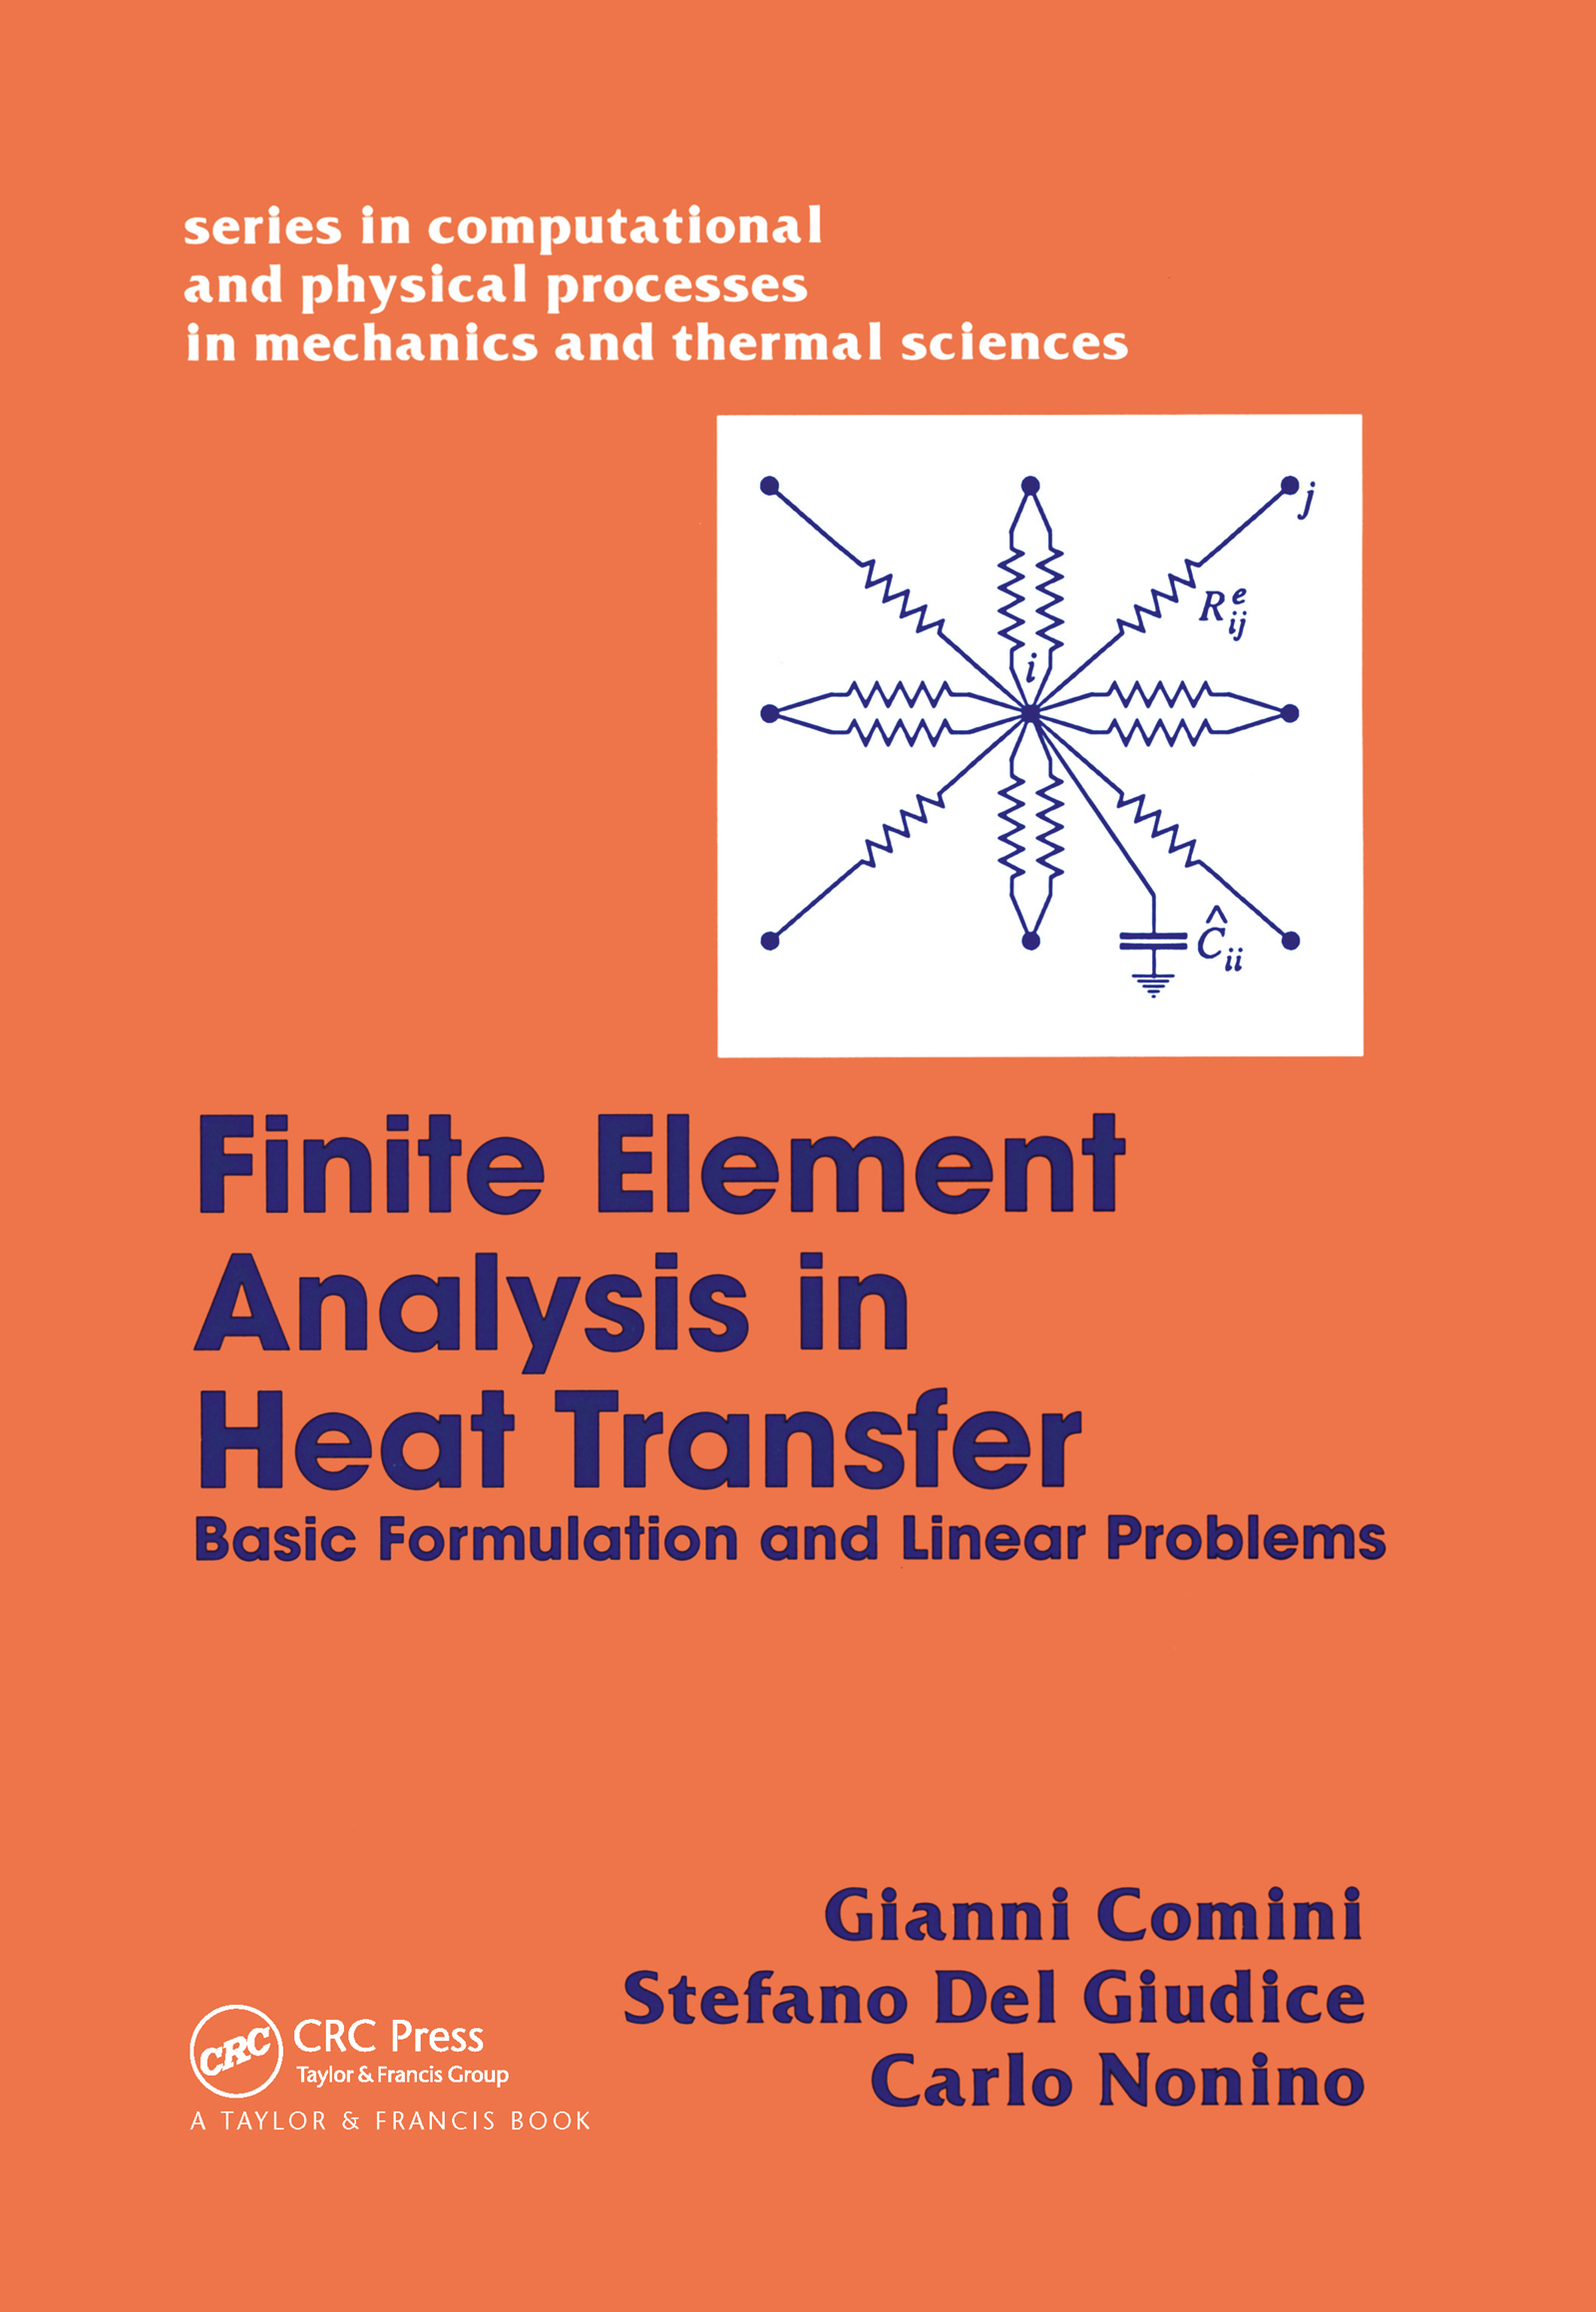 Finite Element Analysis In Heat Transfer: Basic Formulation & Linear Problems book cover